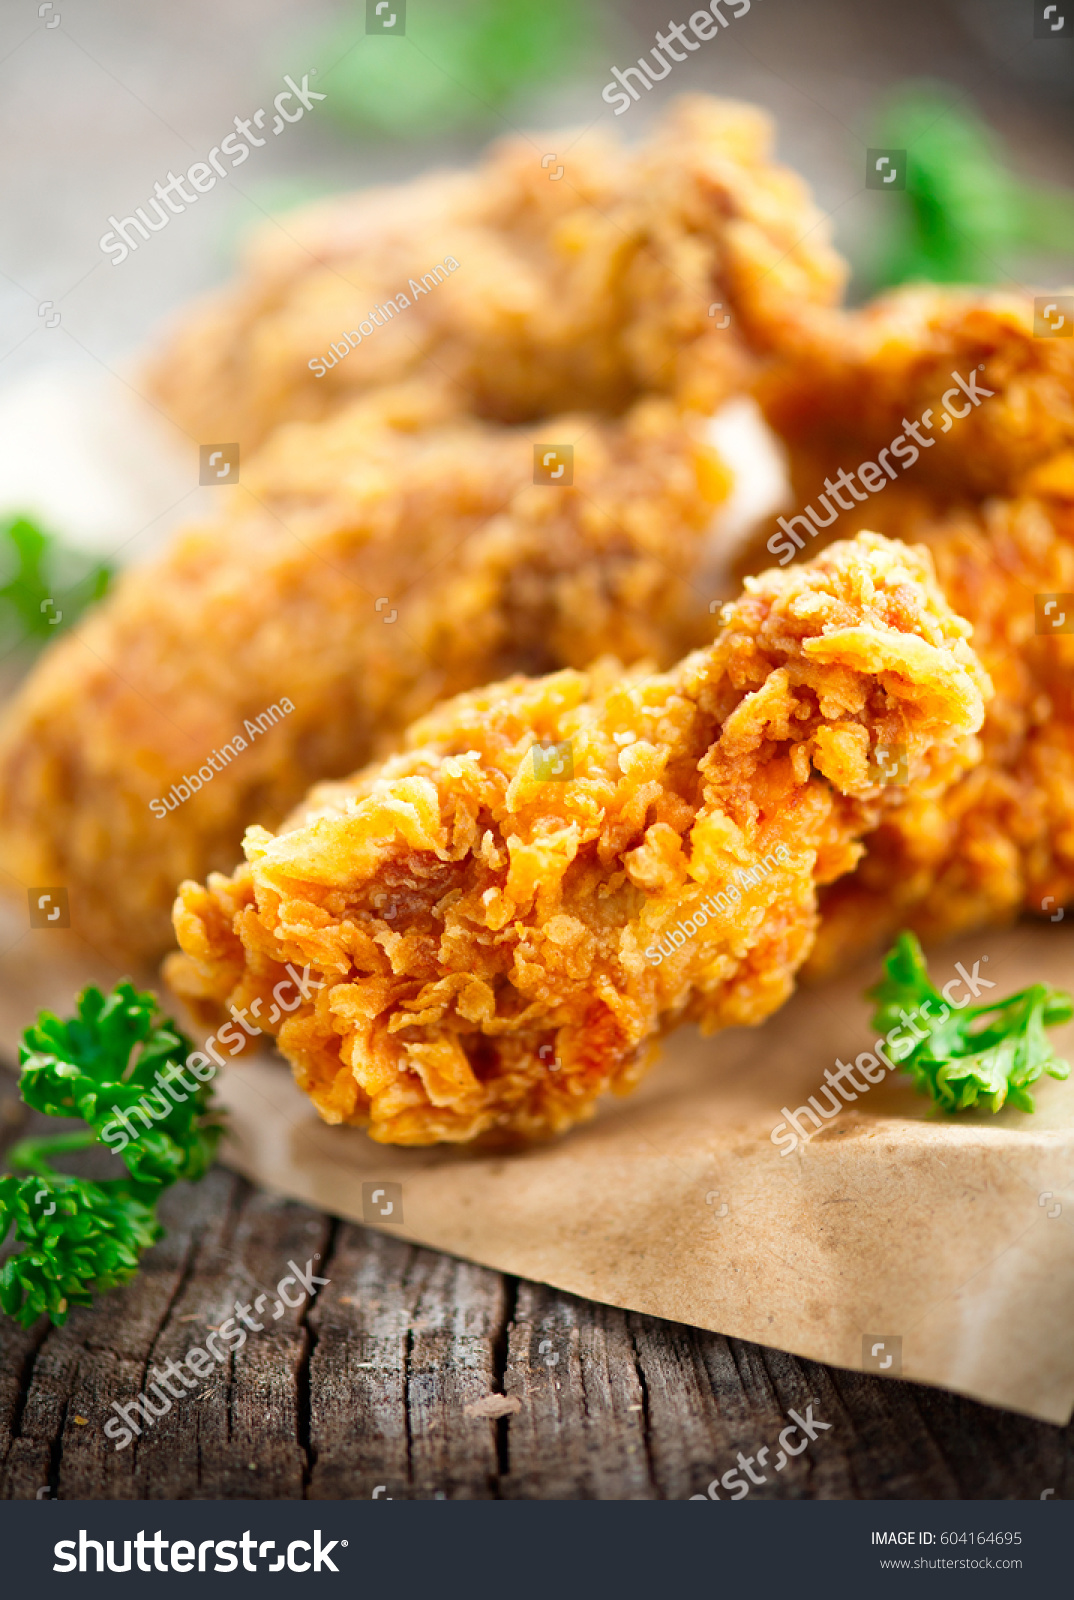 Fried Chicken Wings On Wooden Table Stock Photo Edit Now